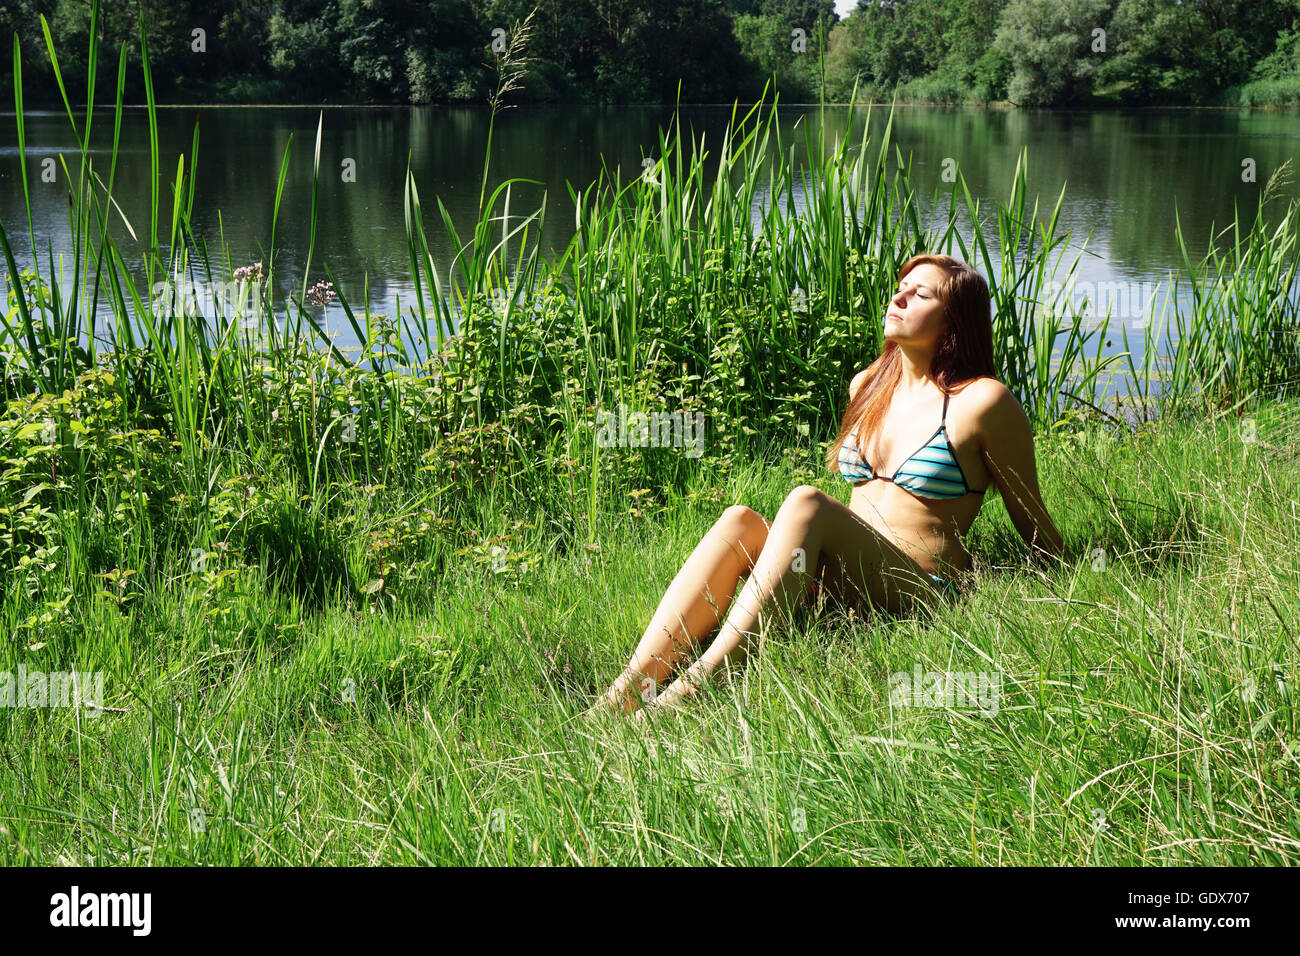 young woman basking in the sun - Stock Image